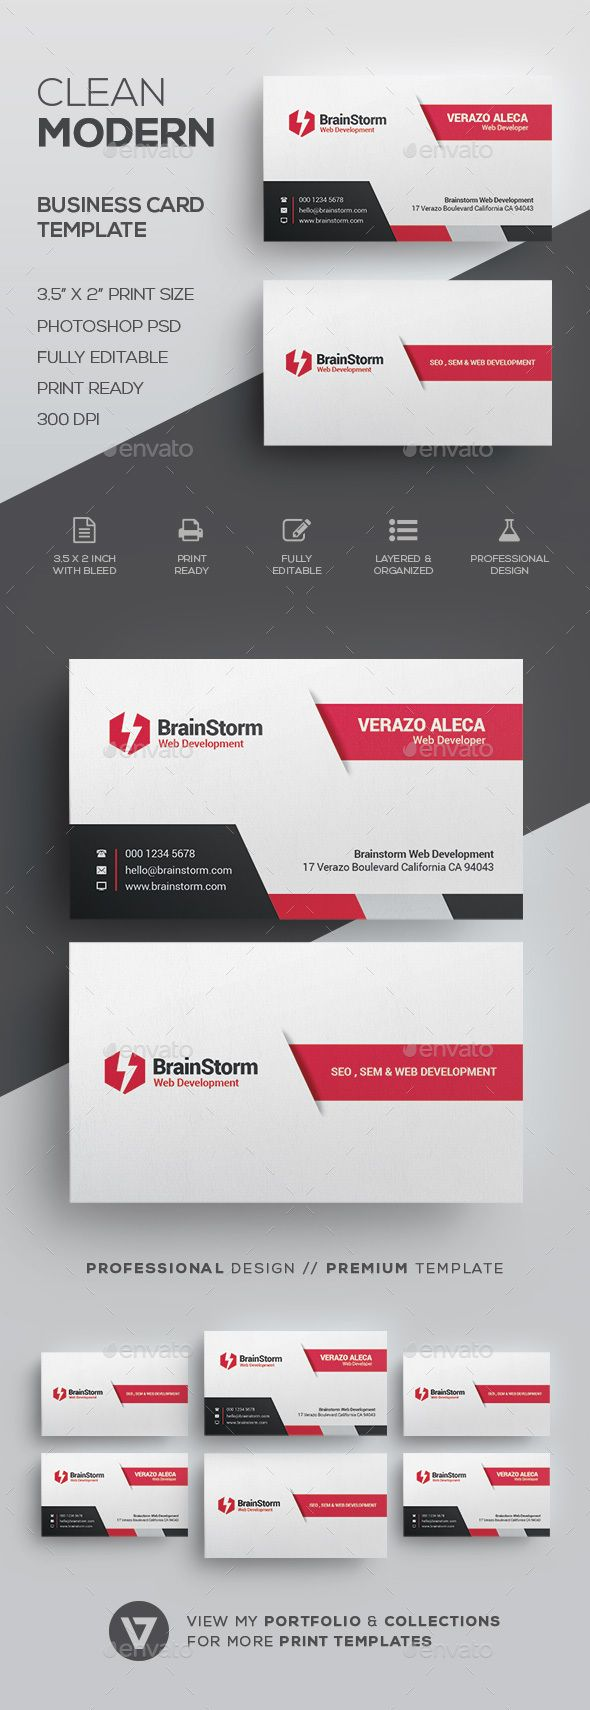 Clean Business Card Template | Pinterest | Corporate business, Card ...